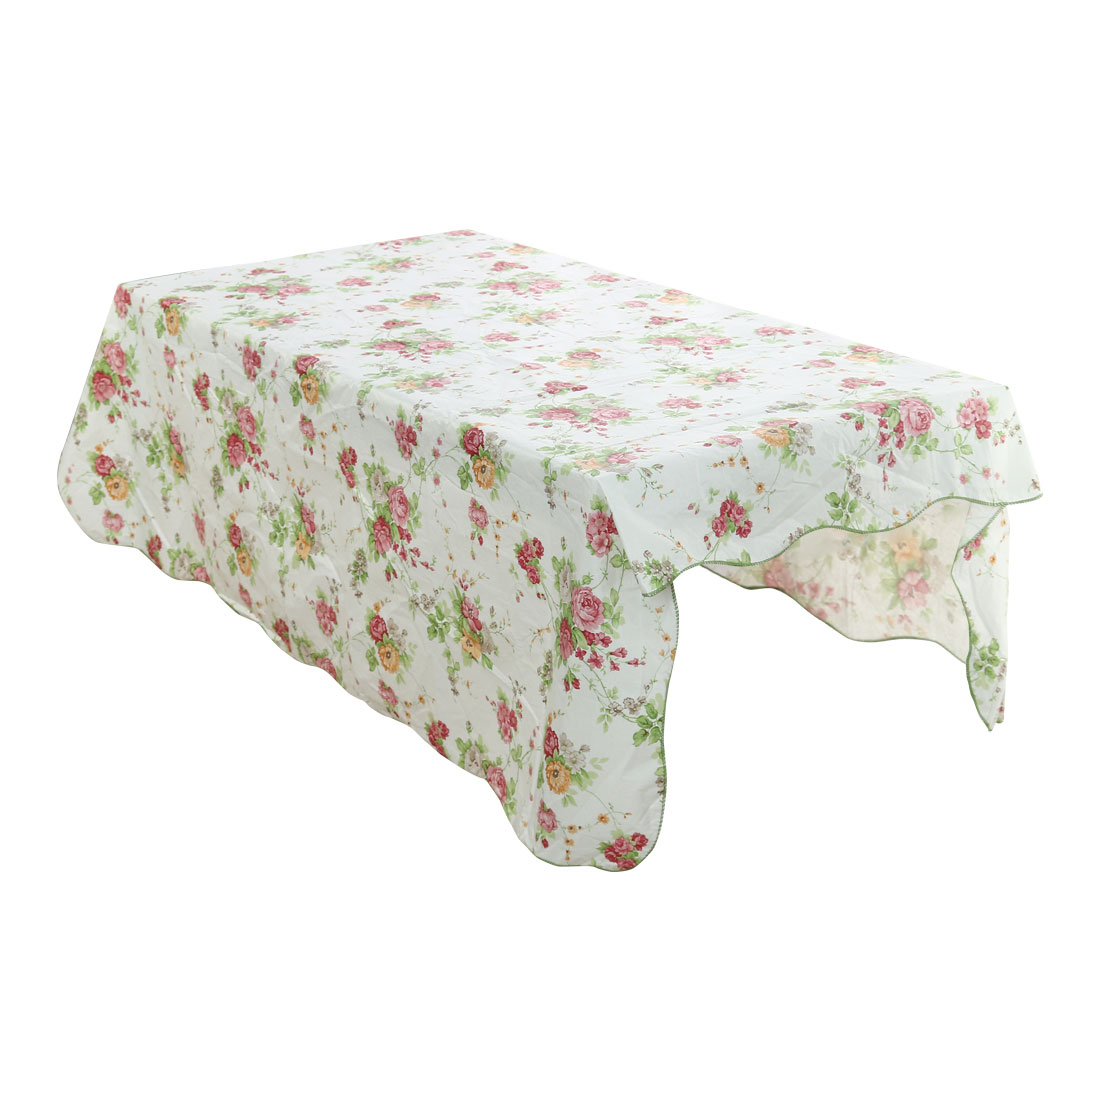 Home Picnic Rose Pattern Water Resistant Oil-proof Tablecloth Table Cloth Cover Pink 72 x 54 Inch